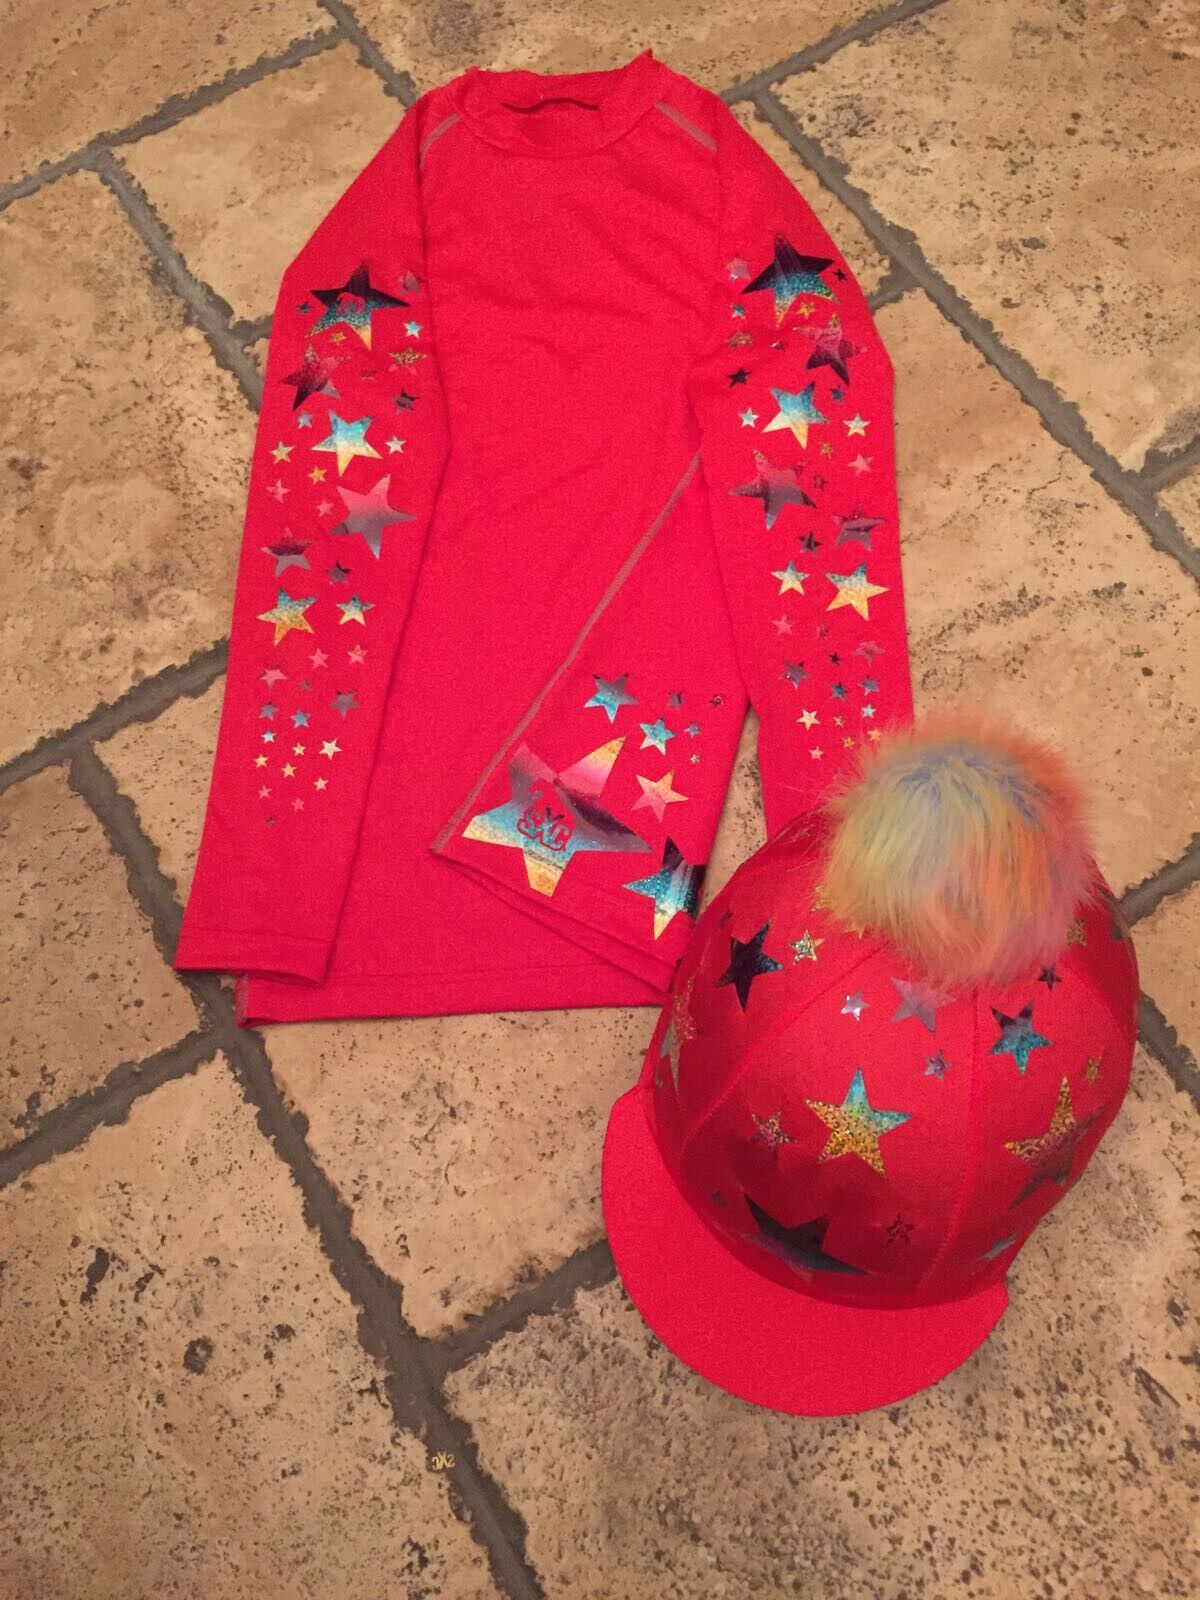 SXC Starburst Cross Country Colour XC Stars Eventing Rainbow Hat Silk Cover